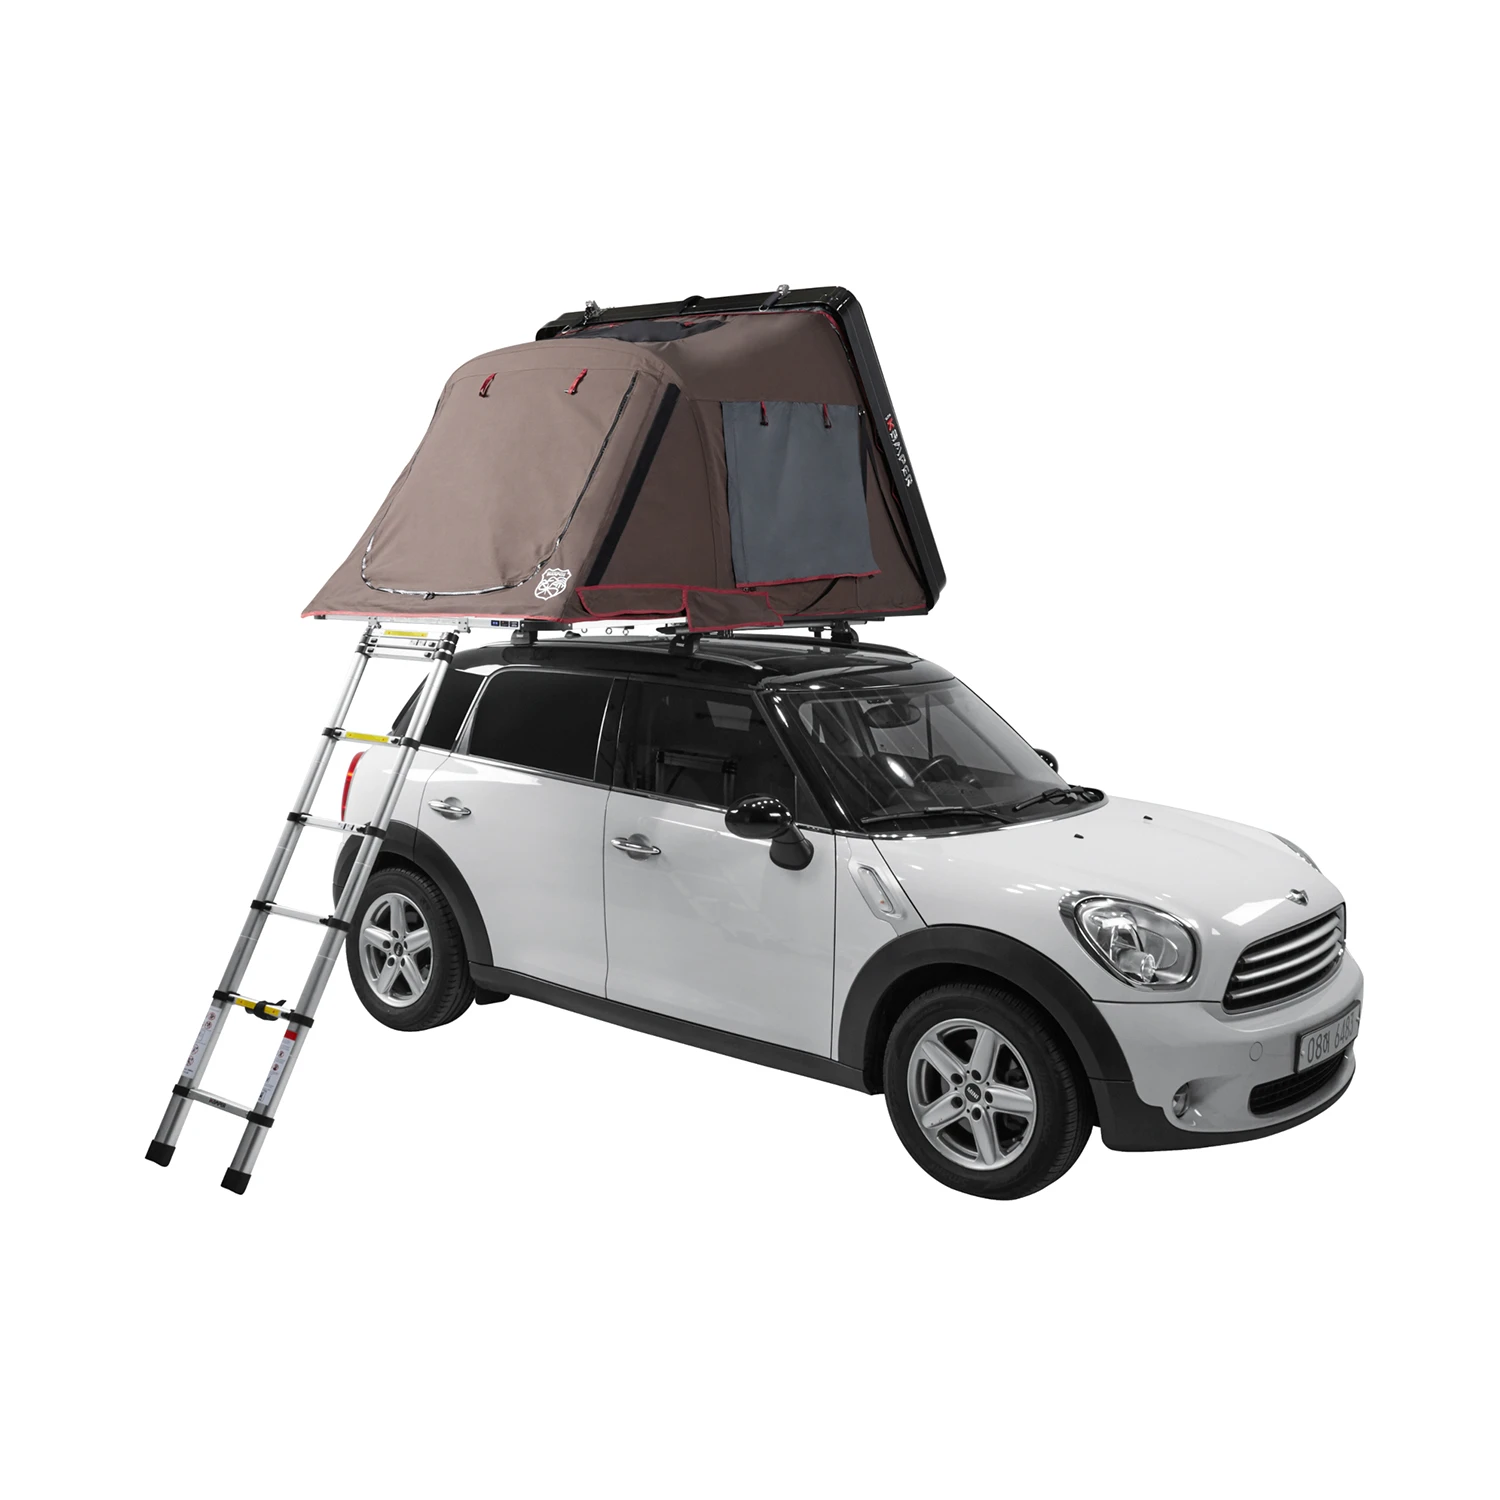 small option for rooftop tent